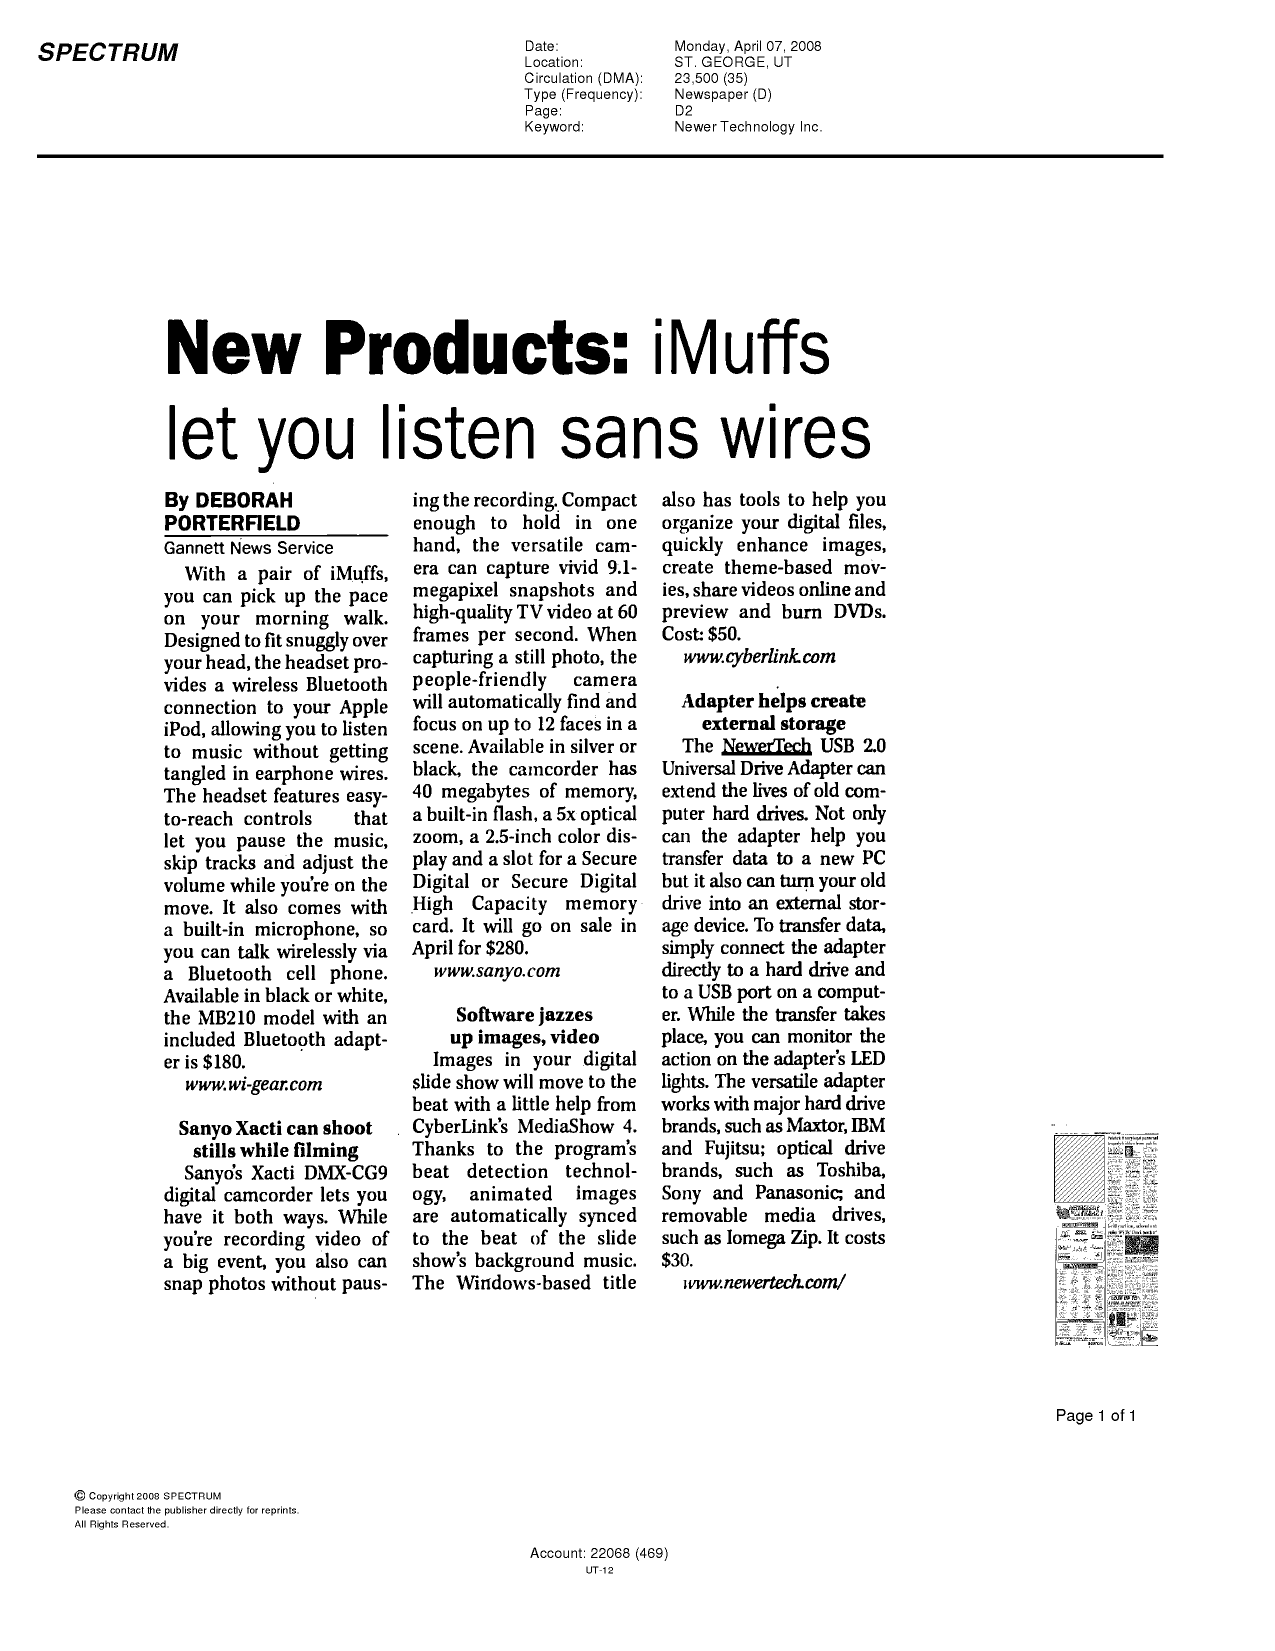 pdf for Wi-Gear Headset iMuffs MB210 manual